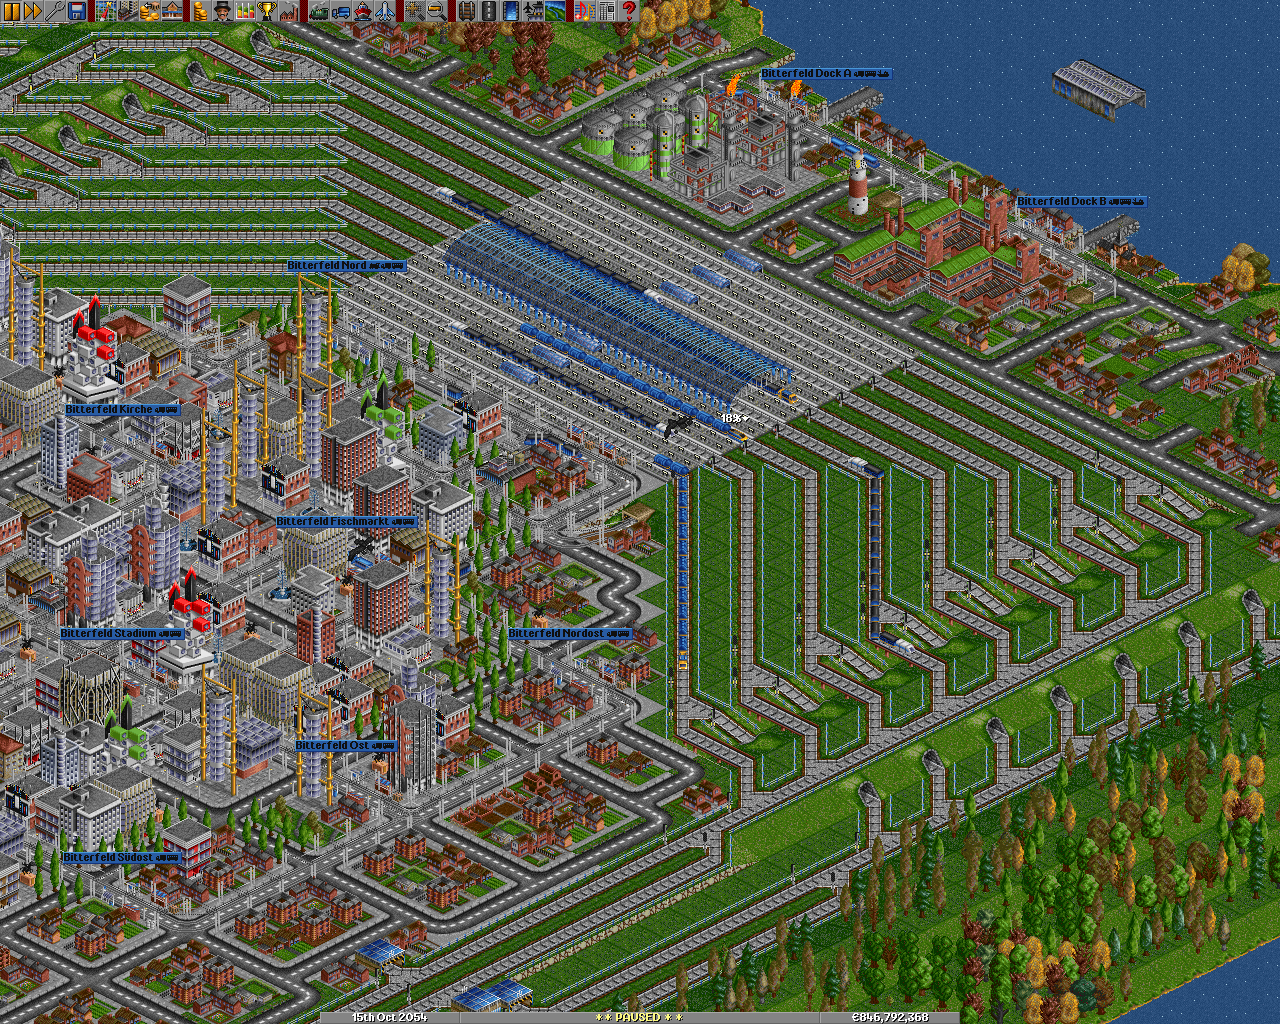 A large industrial 8 platform roll-on/roll-off station, that is connected to a 4-track network by means of dual entrances and dual exits. This keeps things flowing smoothly.